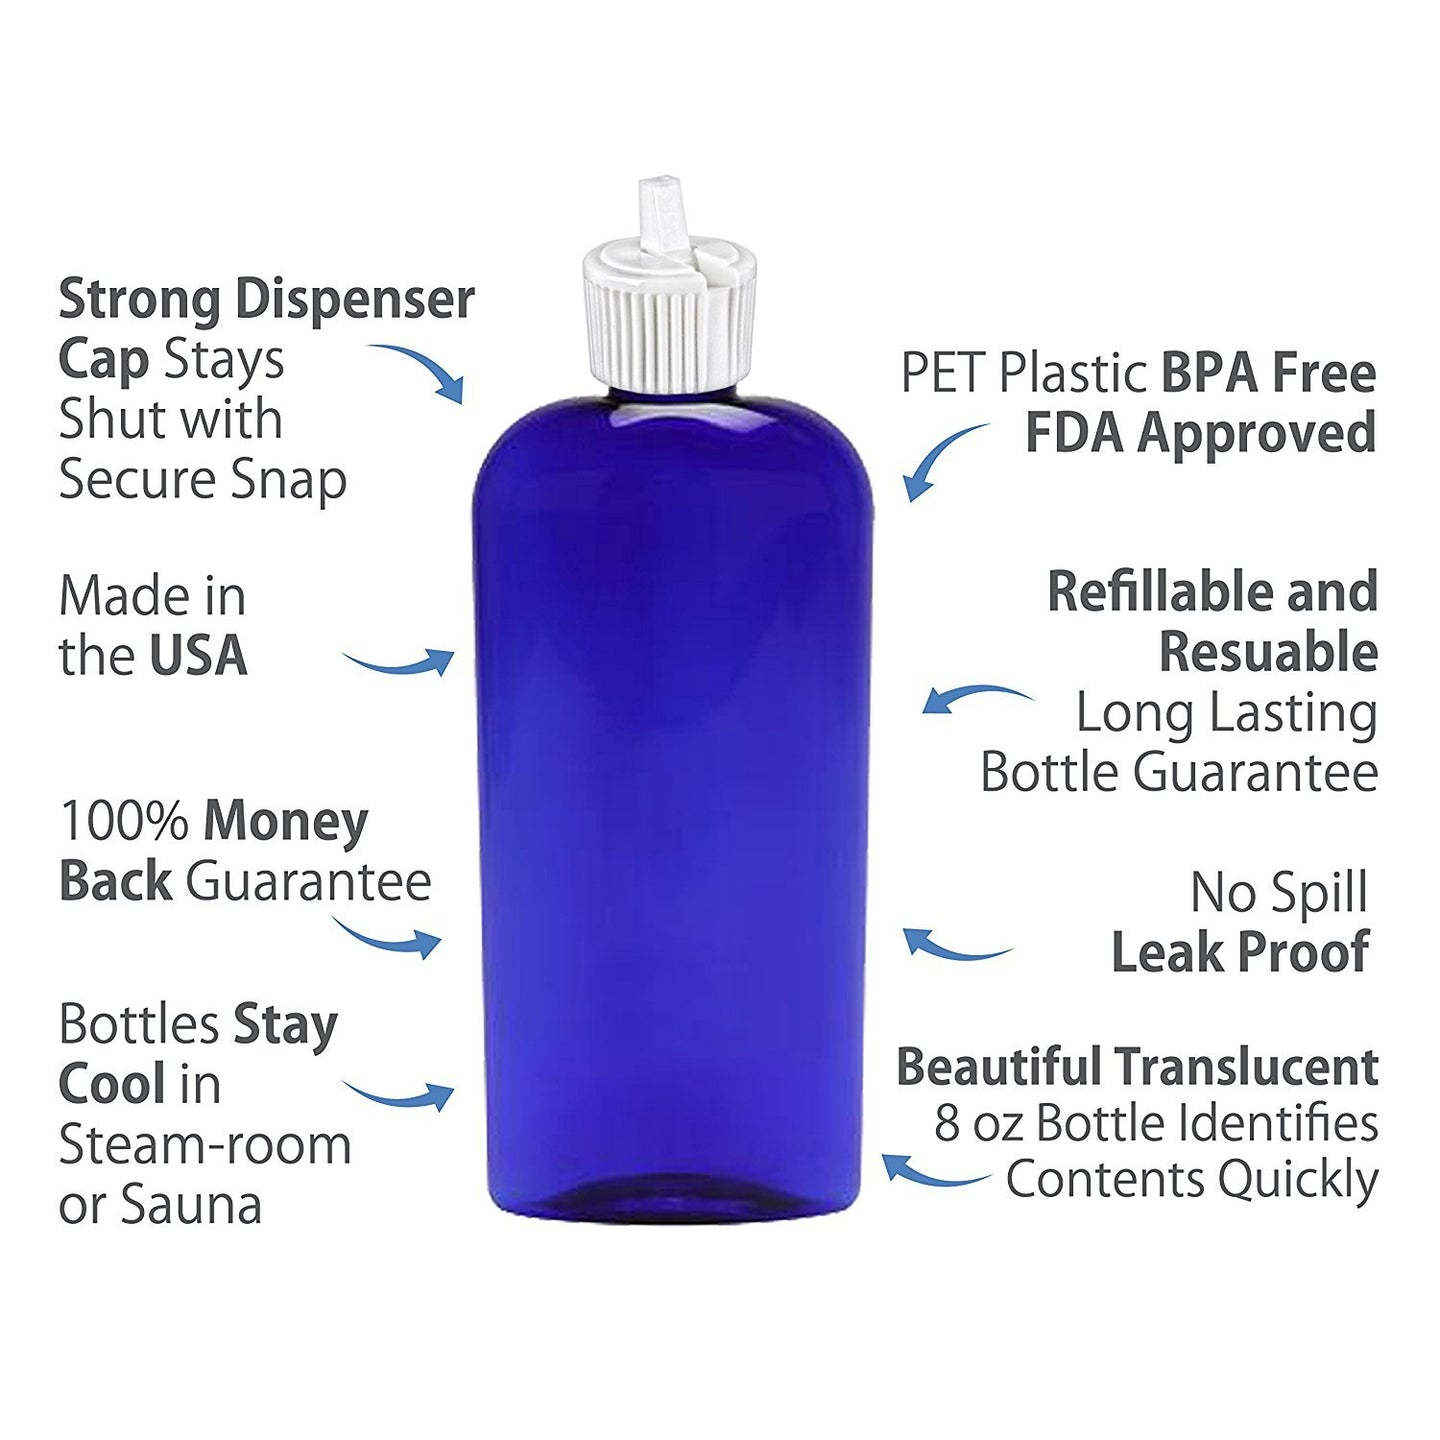 MoYo Natural Labs 8 oz Container PET Bottle Turret Style Closure Top Toggle Adjustable Dispenser Refillable Lotion Container Empty Bottle Blue 8 OZ ( Pack of 1, Blue )